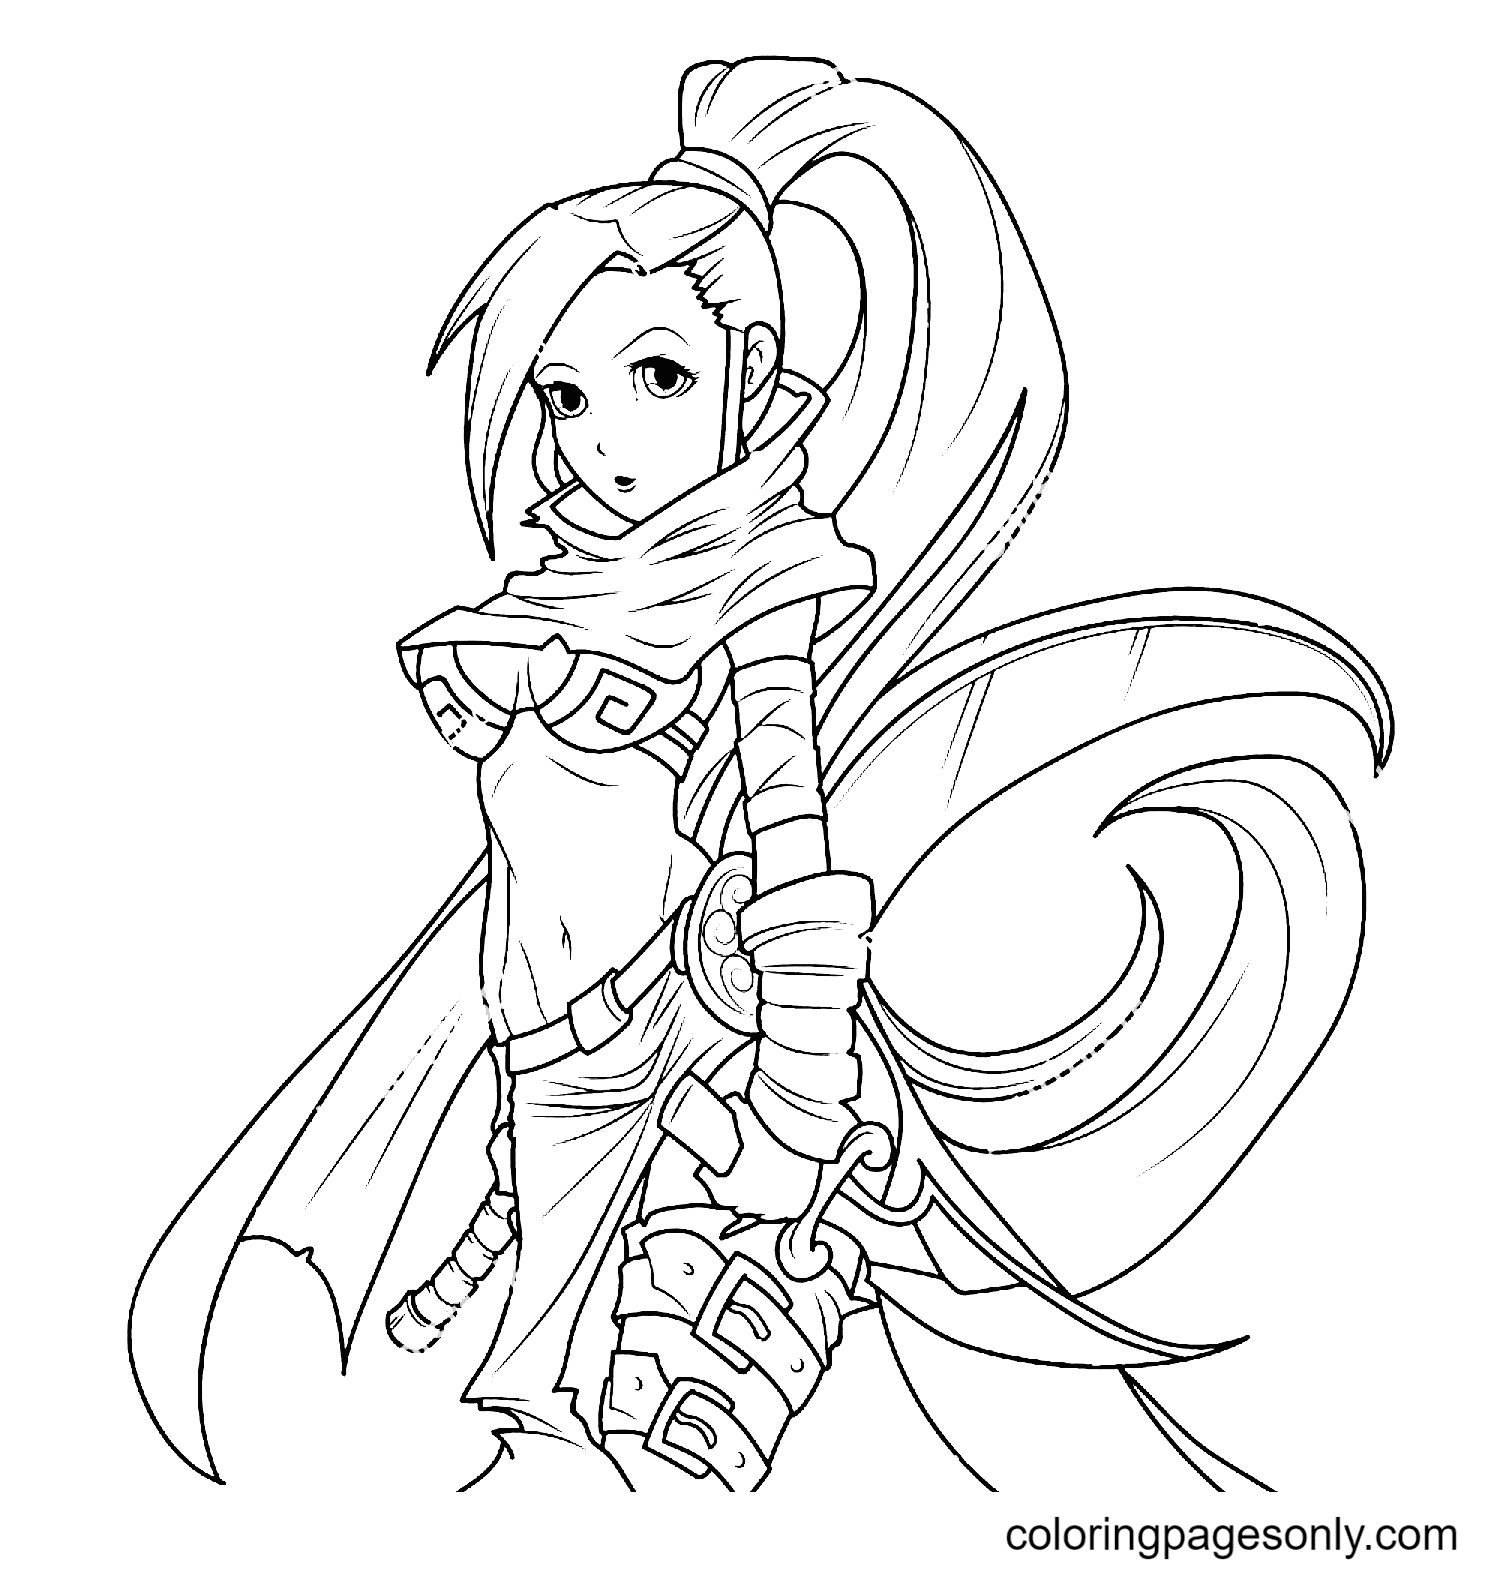 Beautiful Warrior Girl with a Knife Coloring Page